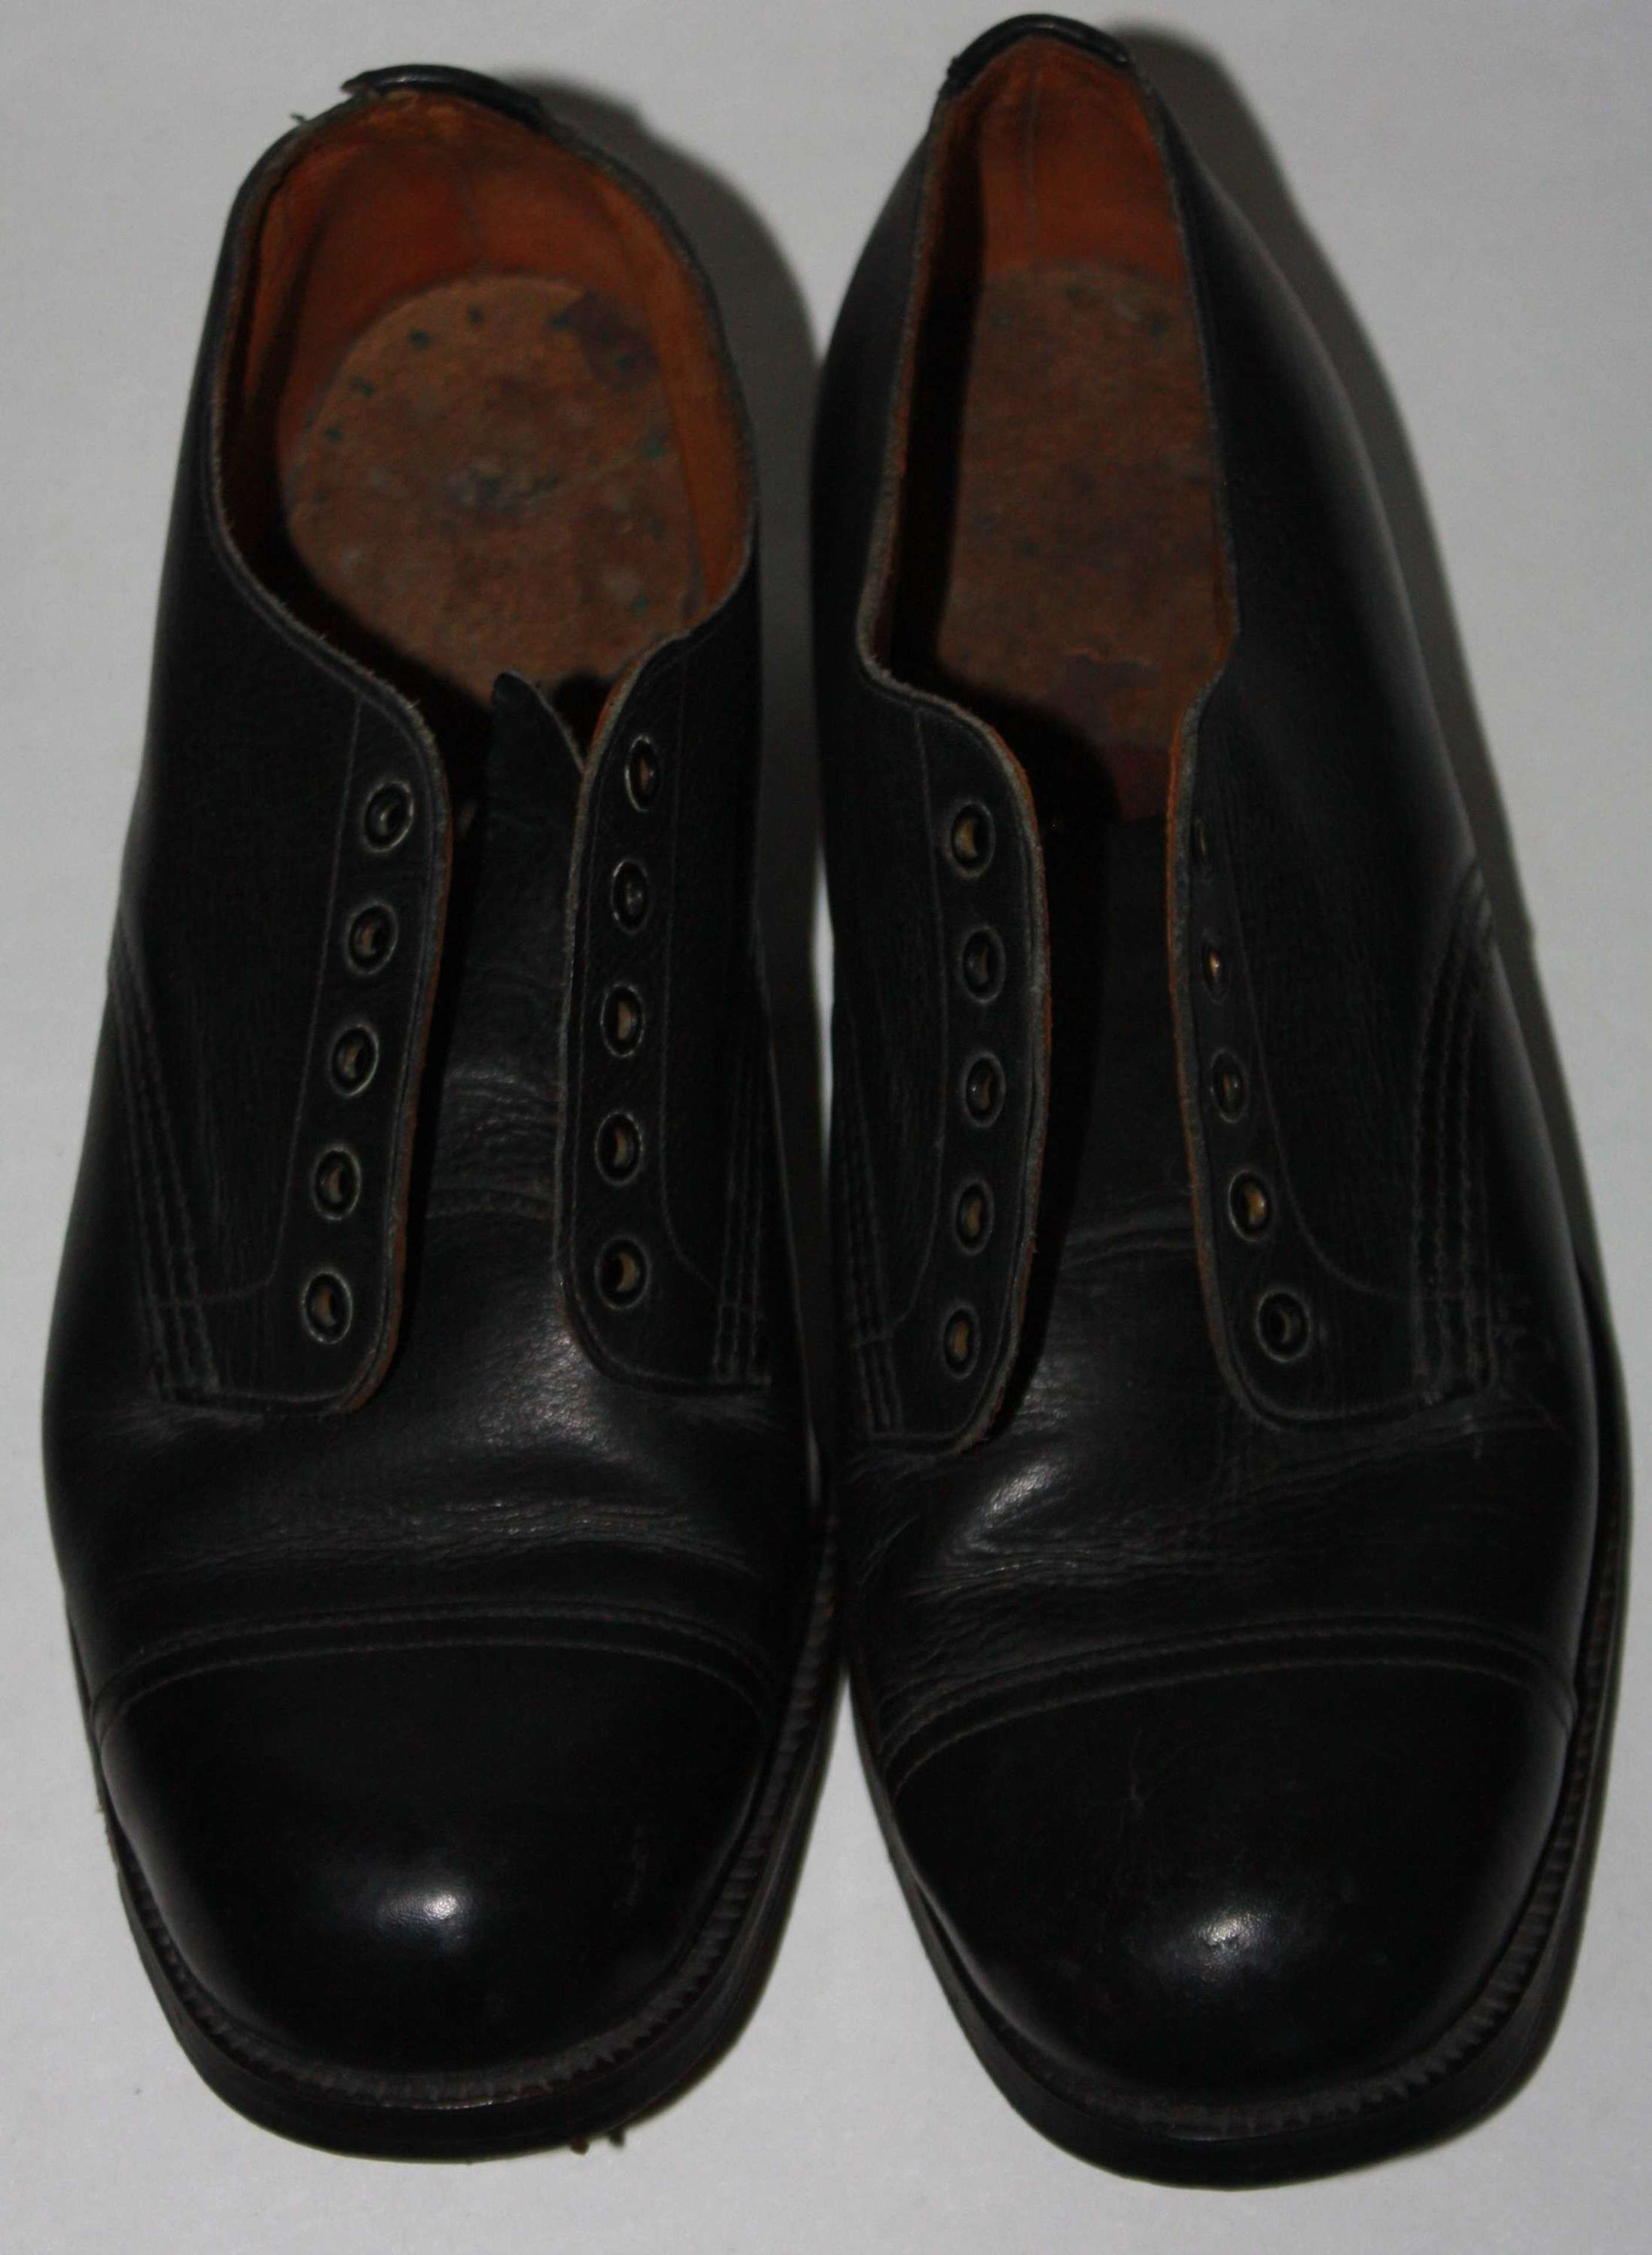 A PAIR OF SIZE 5 CC41 MARKED LADIES BLACK TOE CAPED SHOES